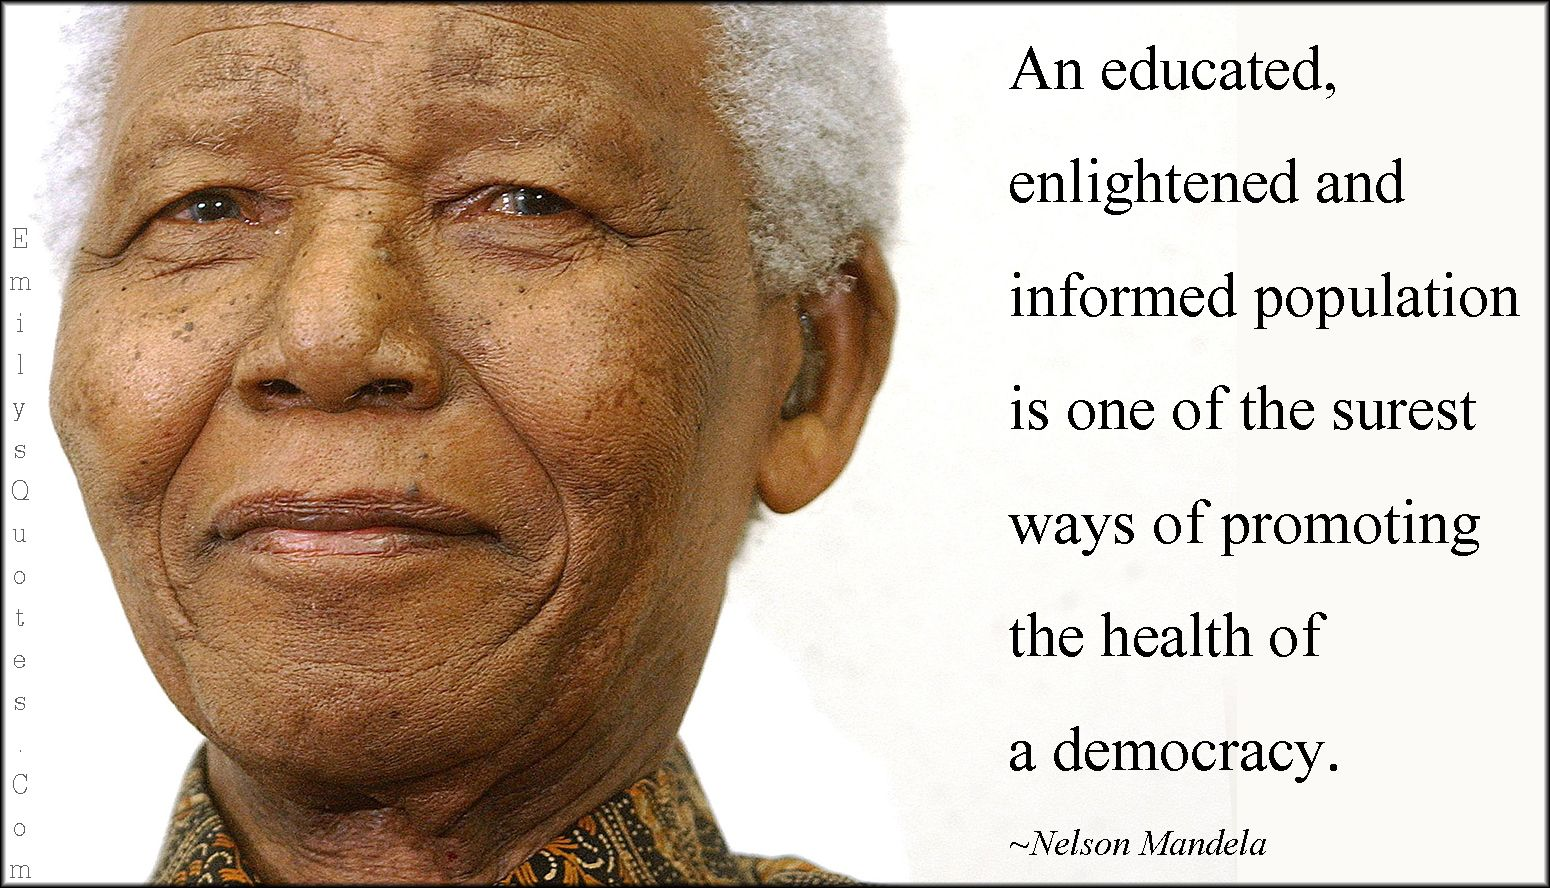 An Educated Enlightened And Informed Population Is One Of The